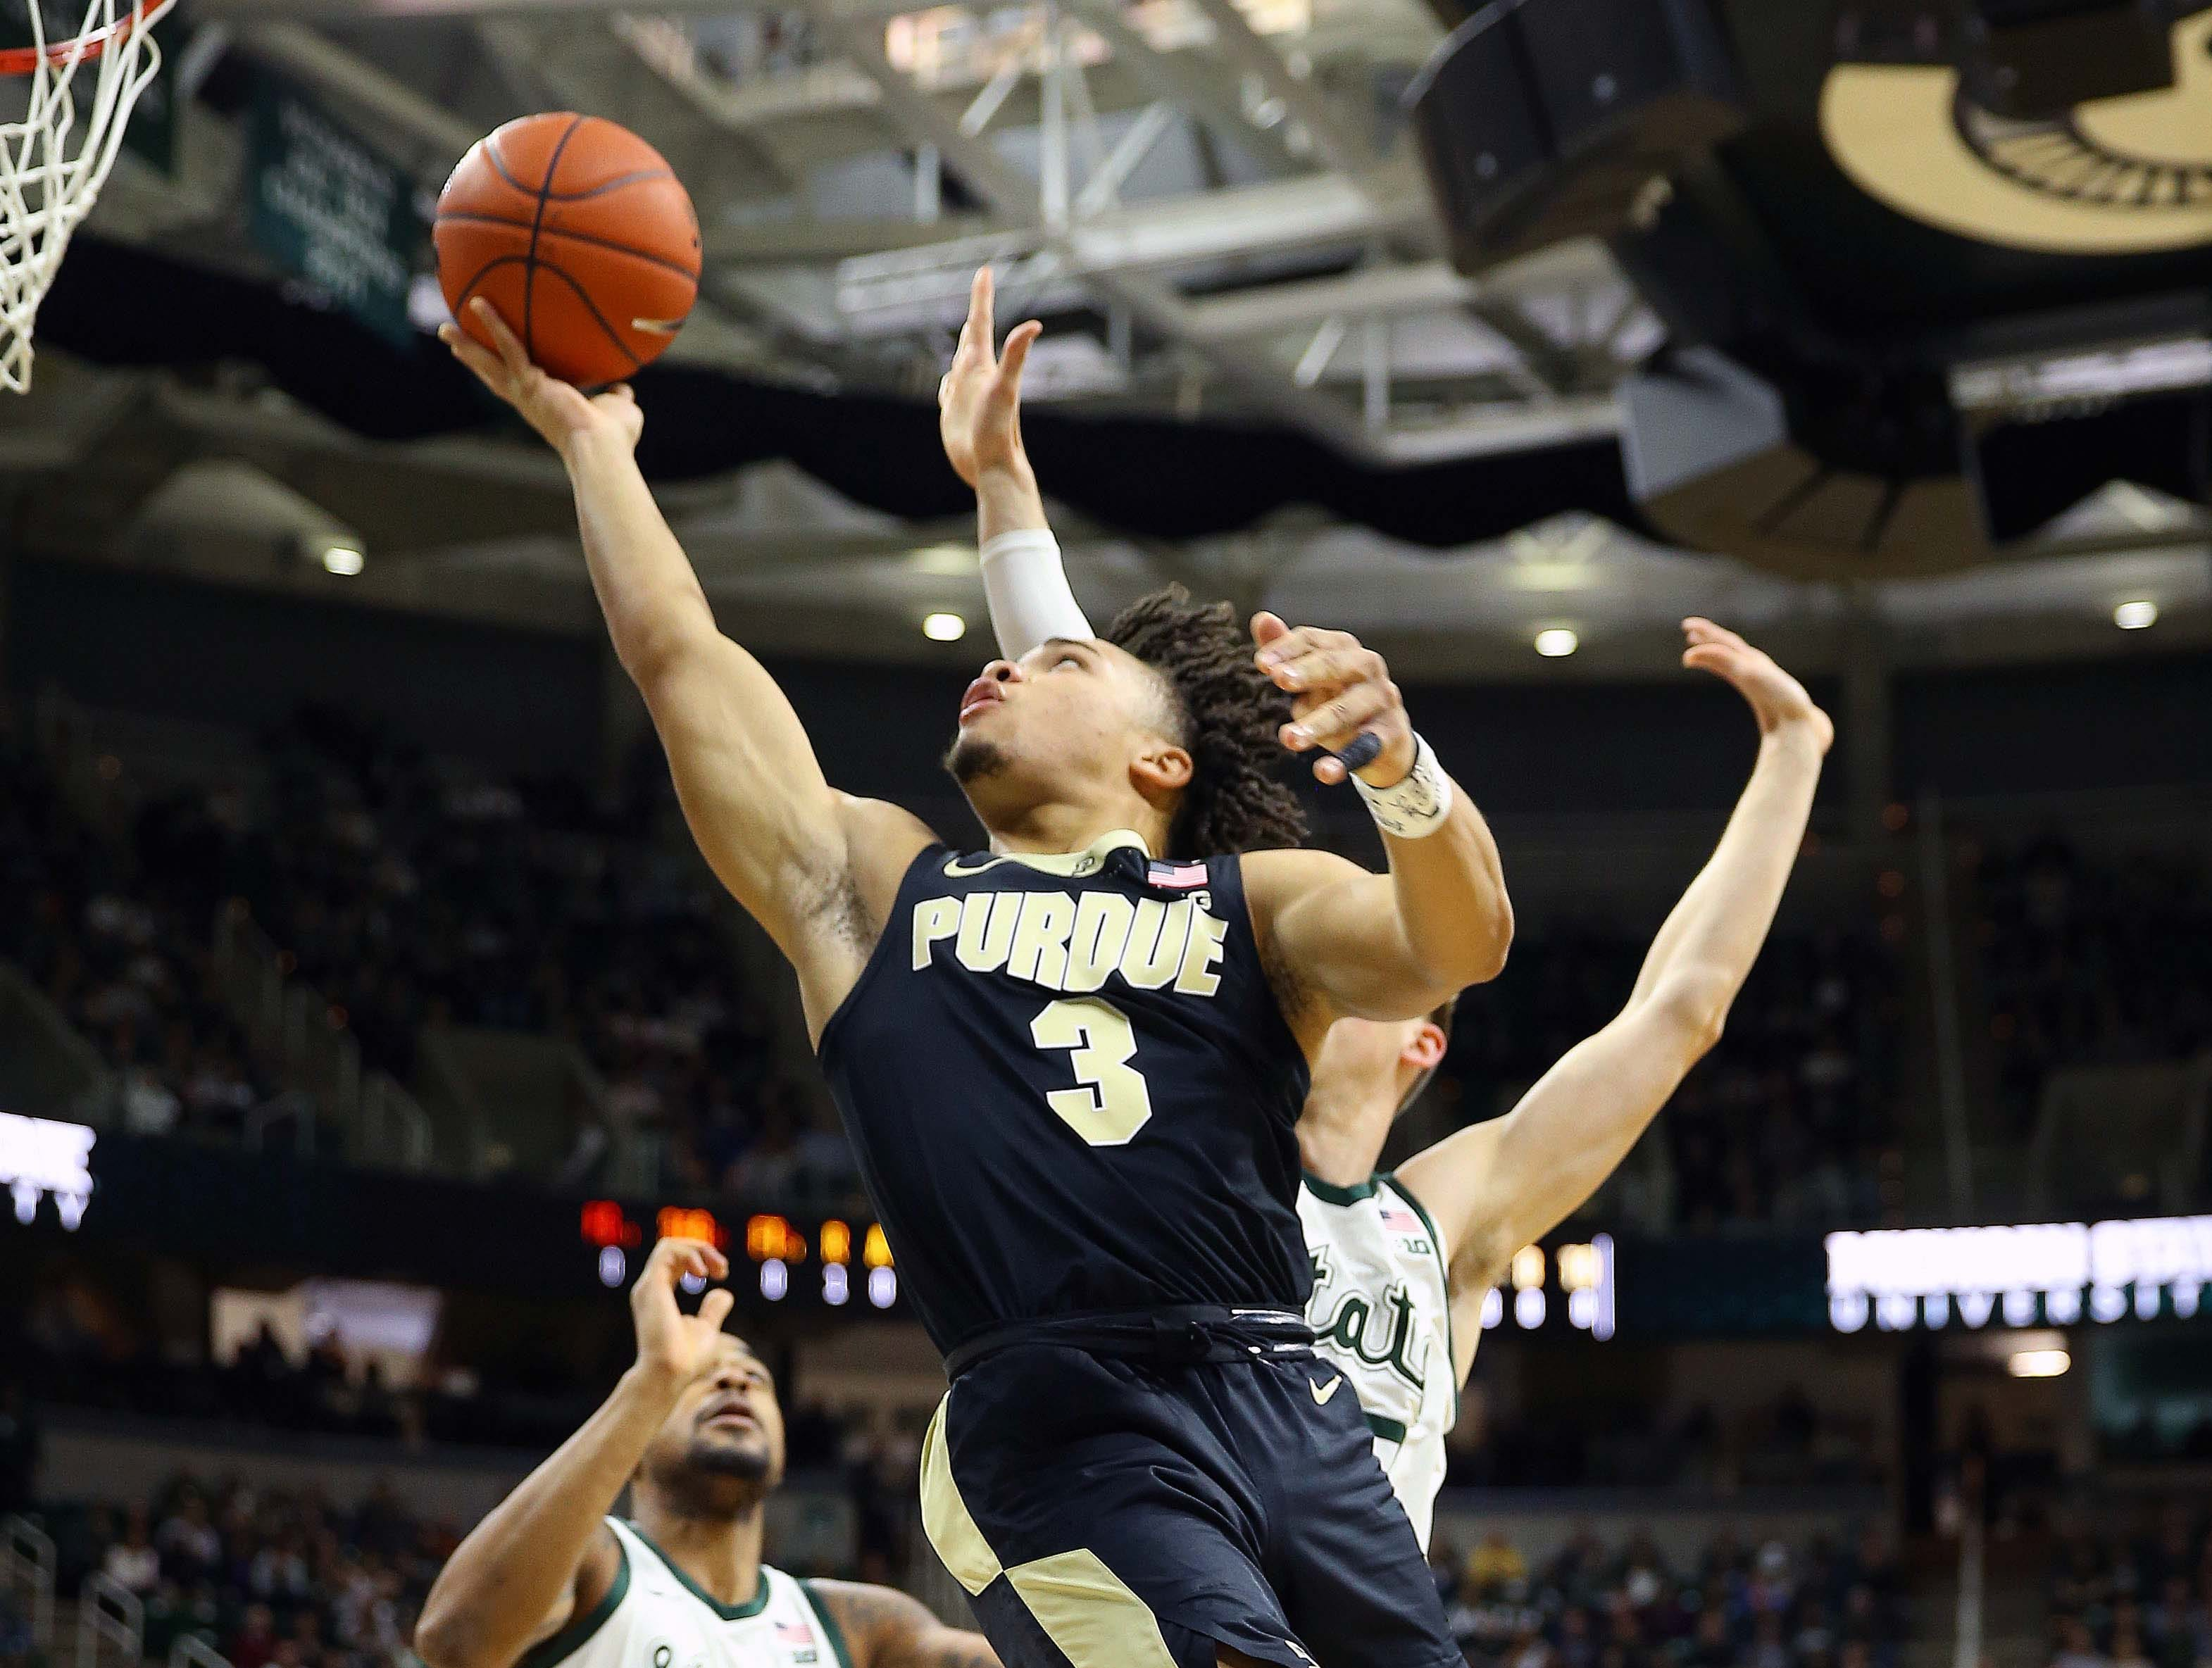 Jan 8, 2019; East Lansing, MI, USA; Purdue Boilermakers guard Carsen Edwards (3) lays the ball up in front of Michigan State Spartans guard Matt McQuaid (20) during the first half of a game at the Breslin Center. Mandatory Credit: Mike Carter-USA TODAY Sports